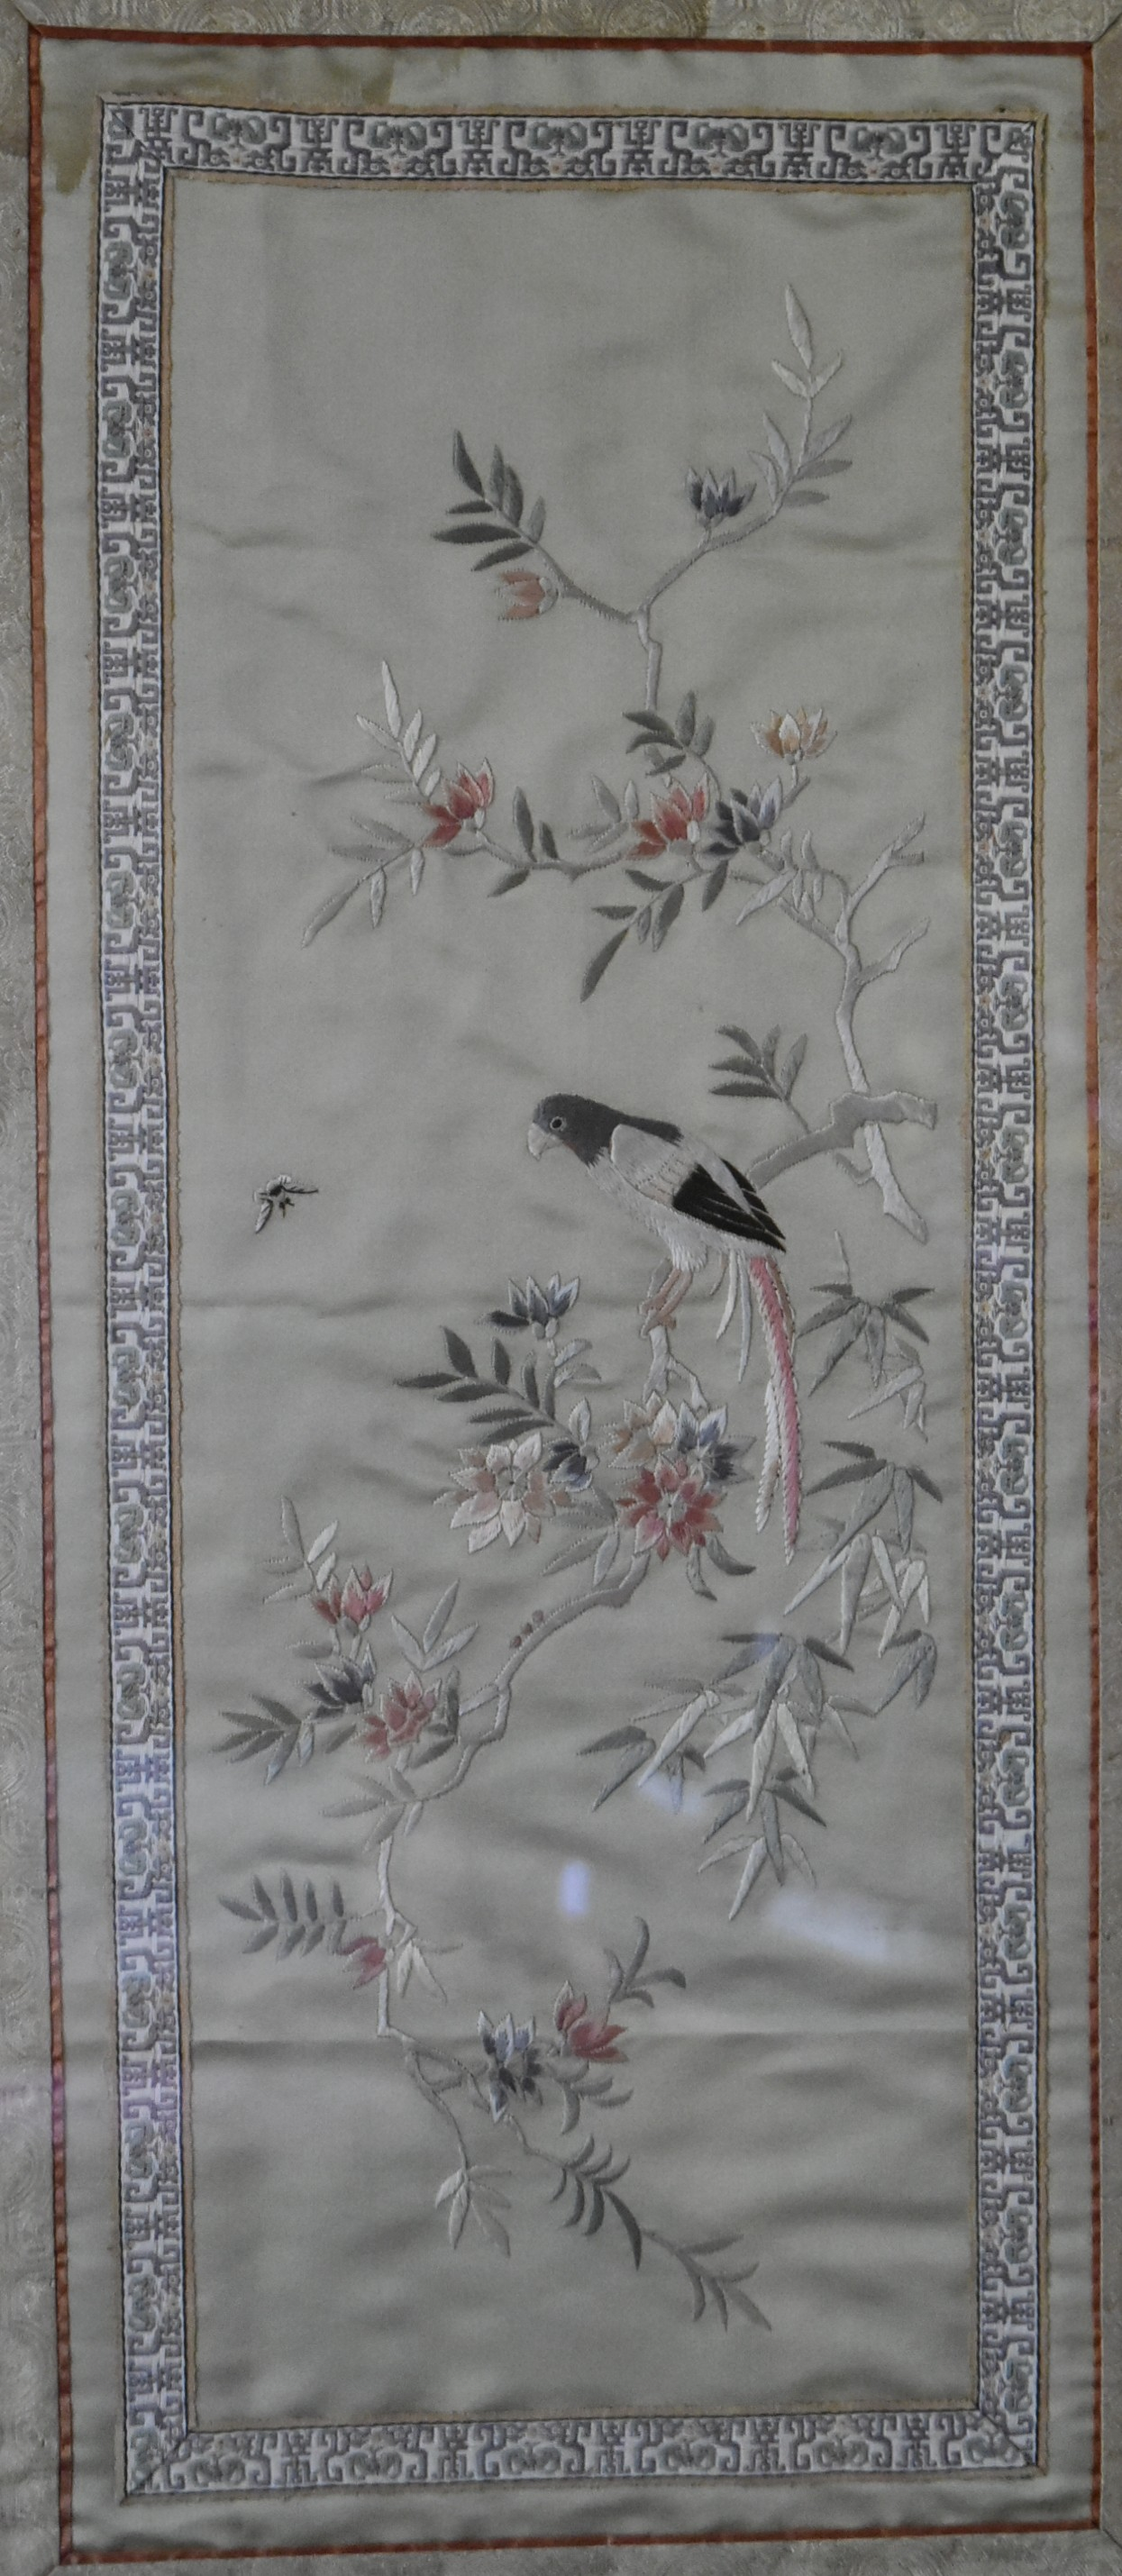 A Japanese framed and glazed silk work embroidery of a parakeet on a branch with blossom contained